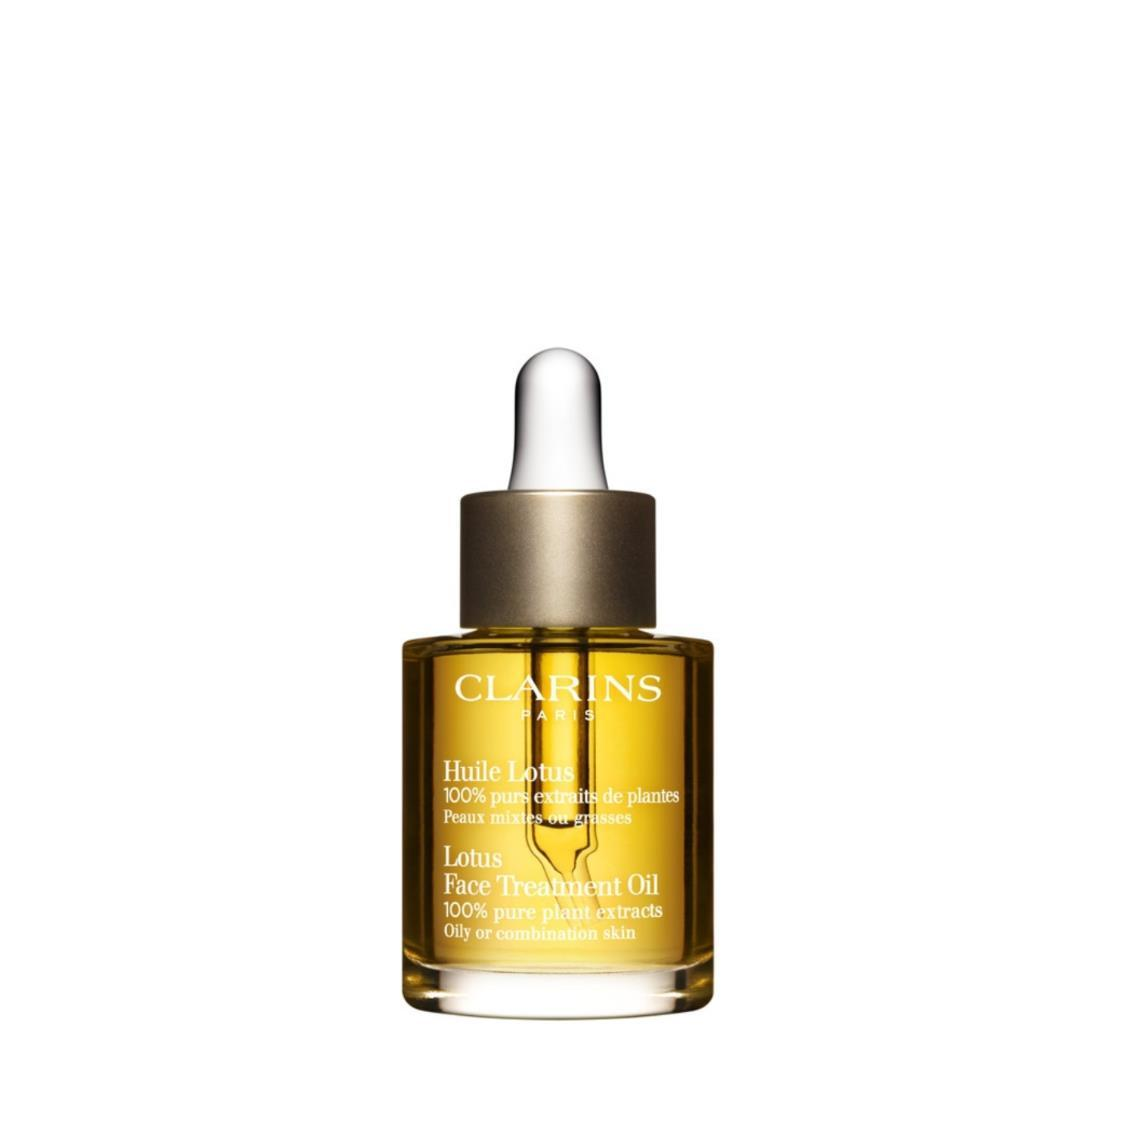 Clarins Lotus Face Treatment Oil 30ml